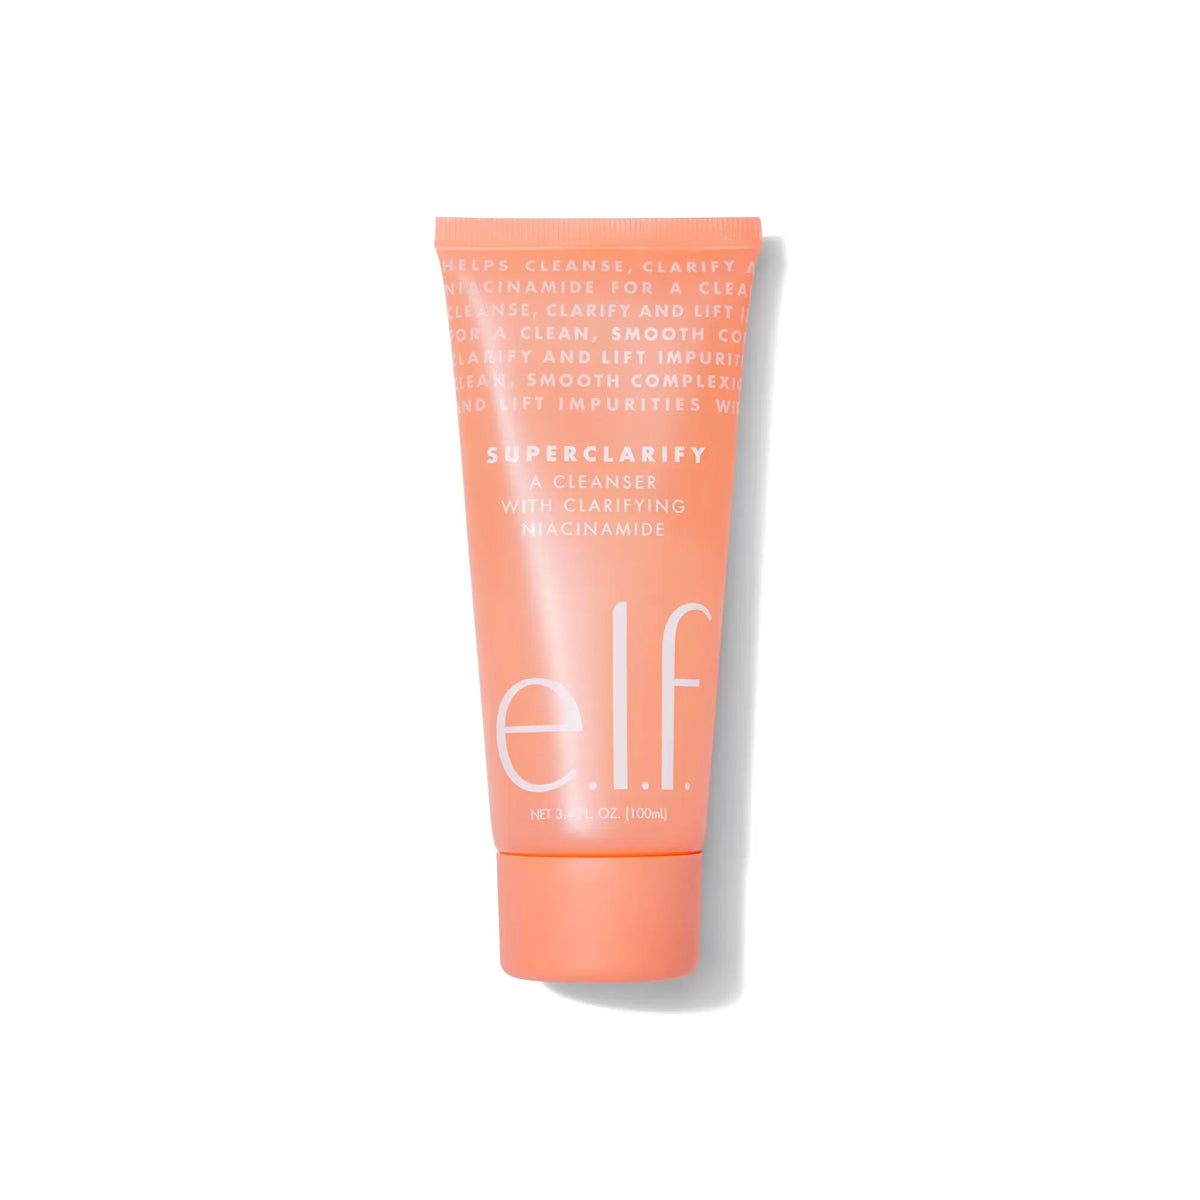 ELF Super Clarify Cleanser